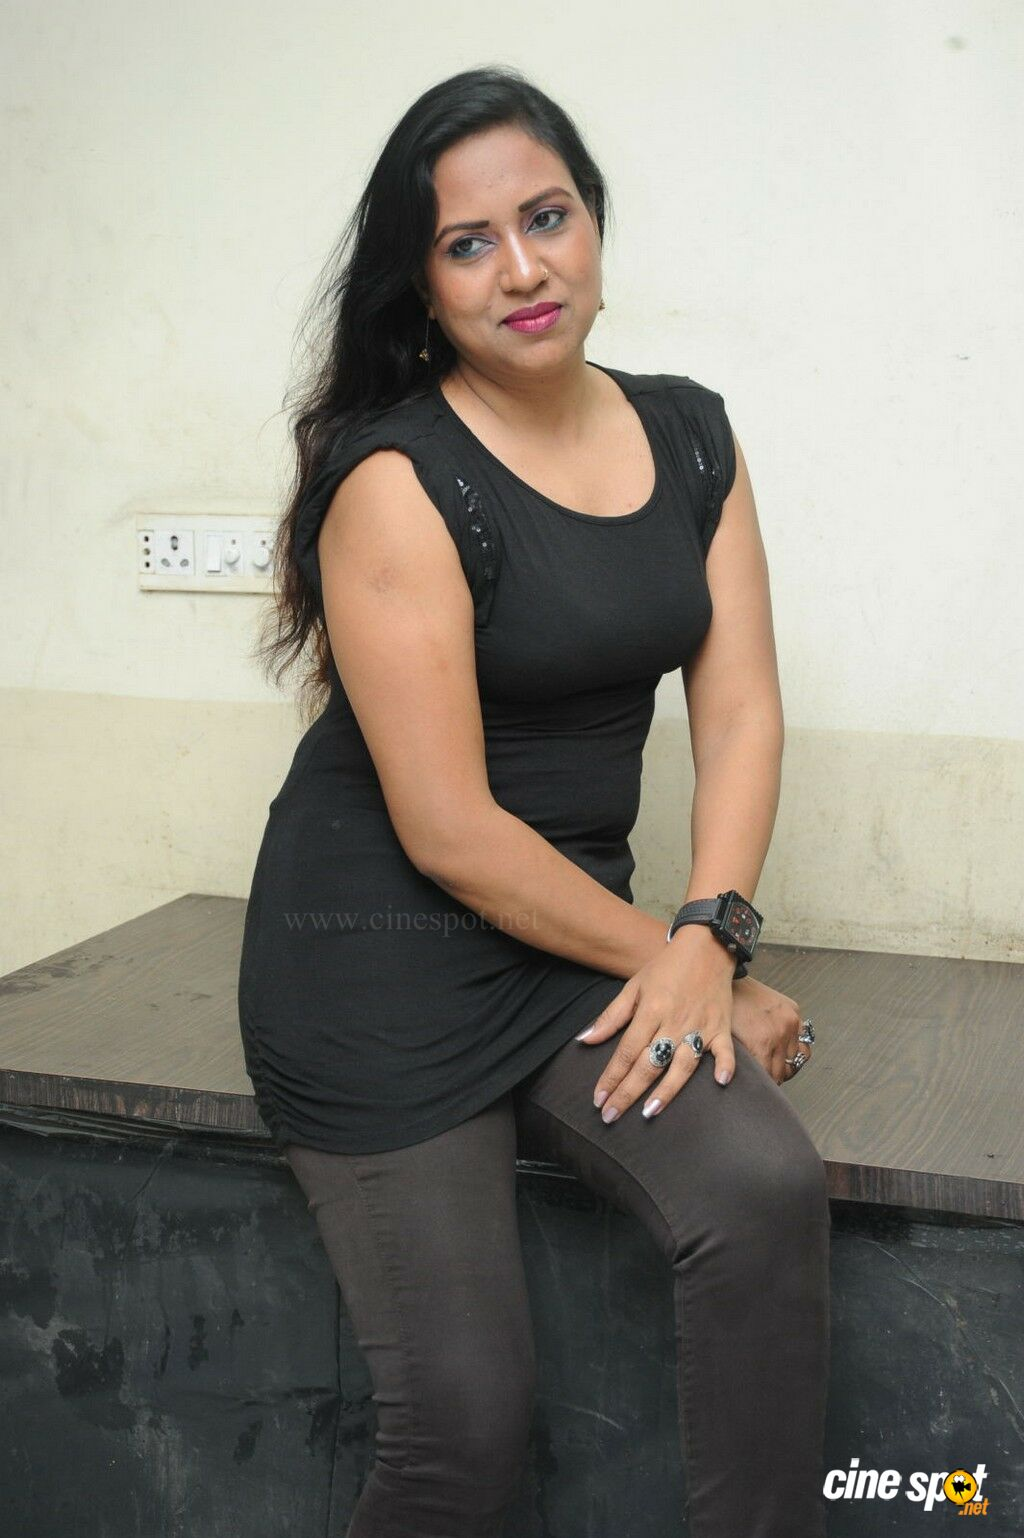 Actress gallery telugu Pictures of